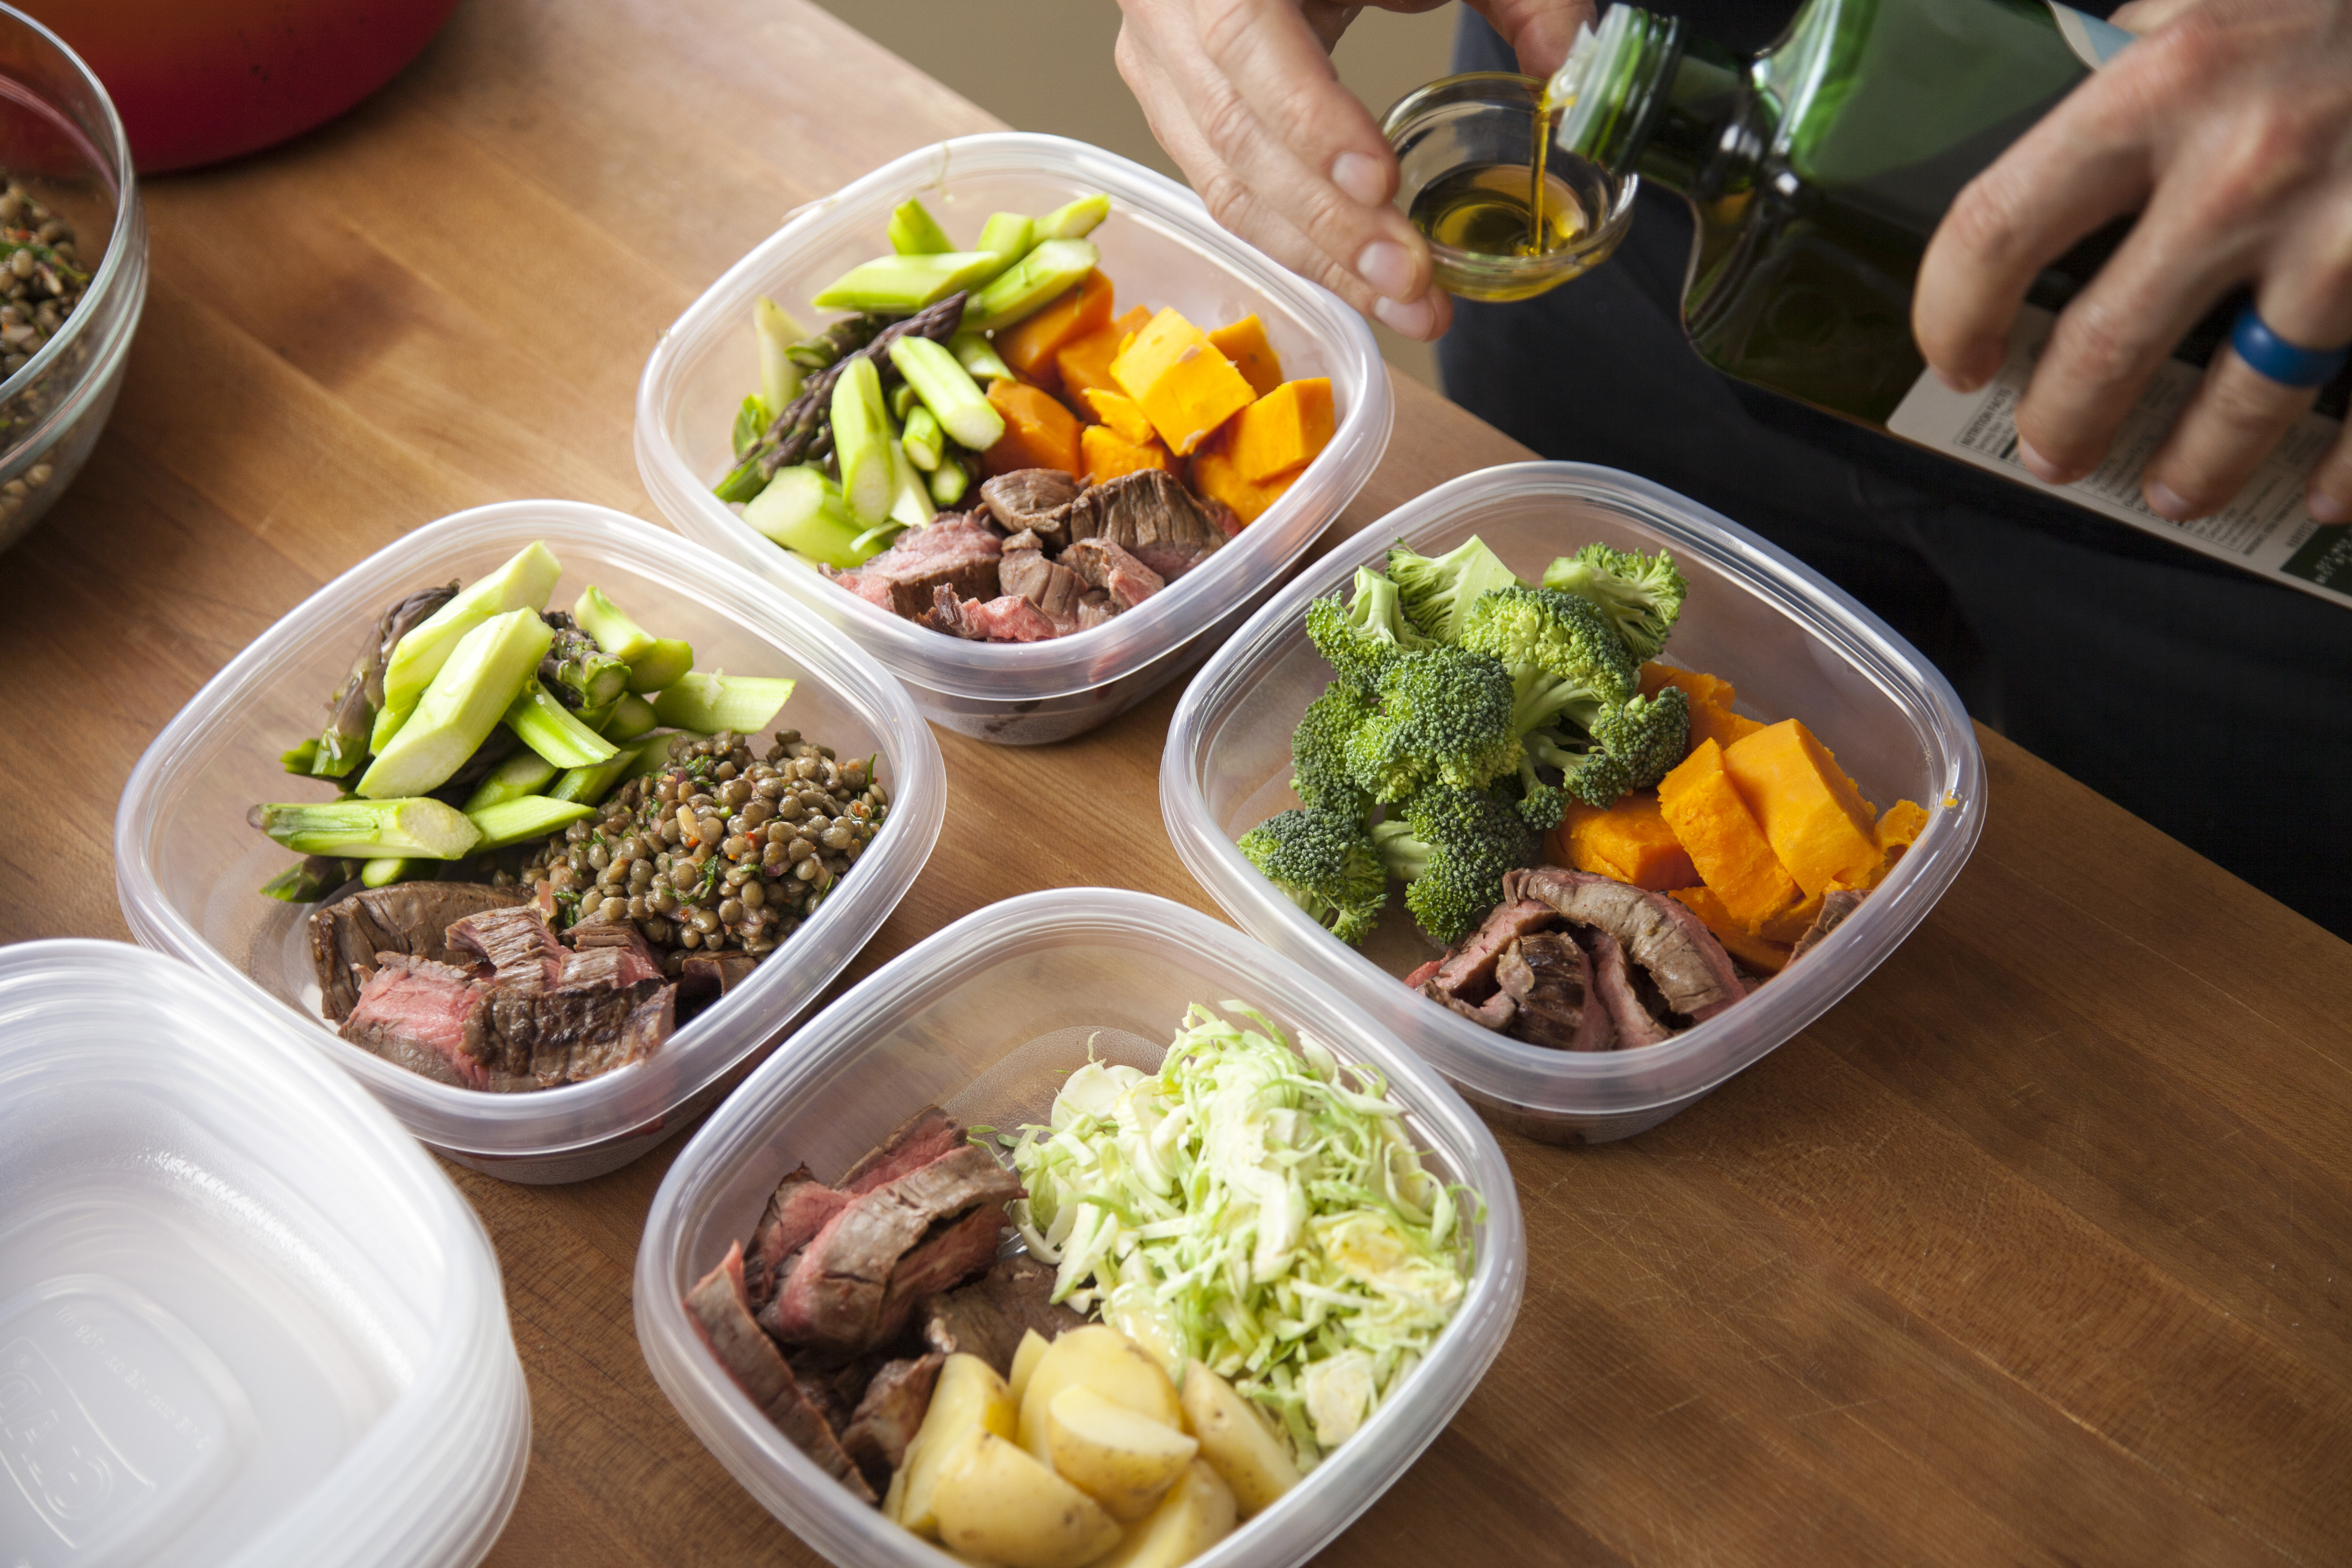 Balanced Meal Planning With Jef Nelson Of Shogun Fitness